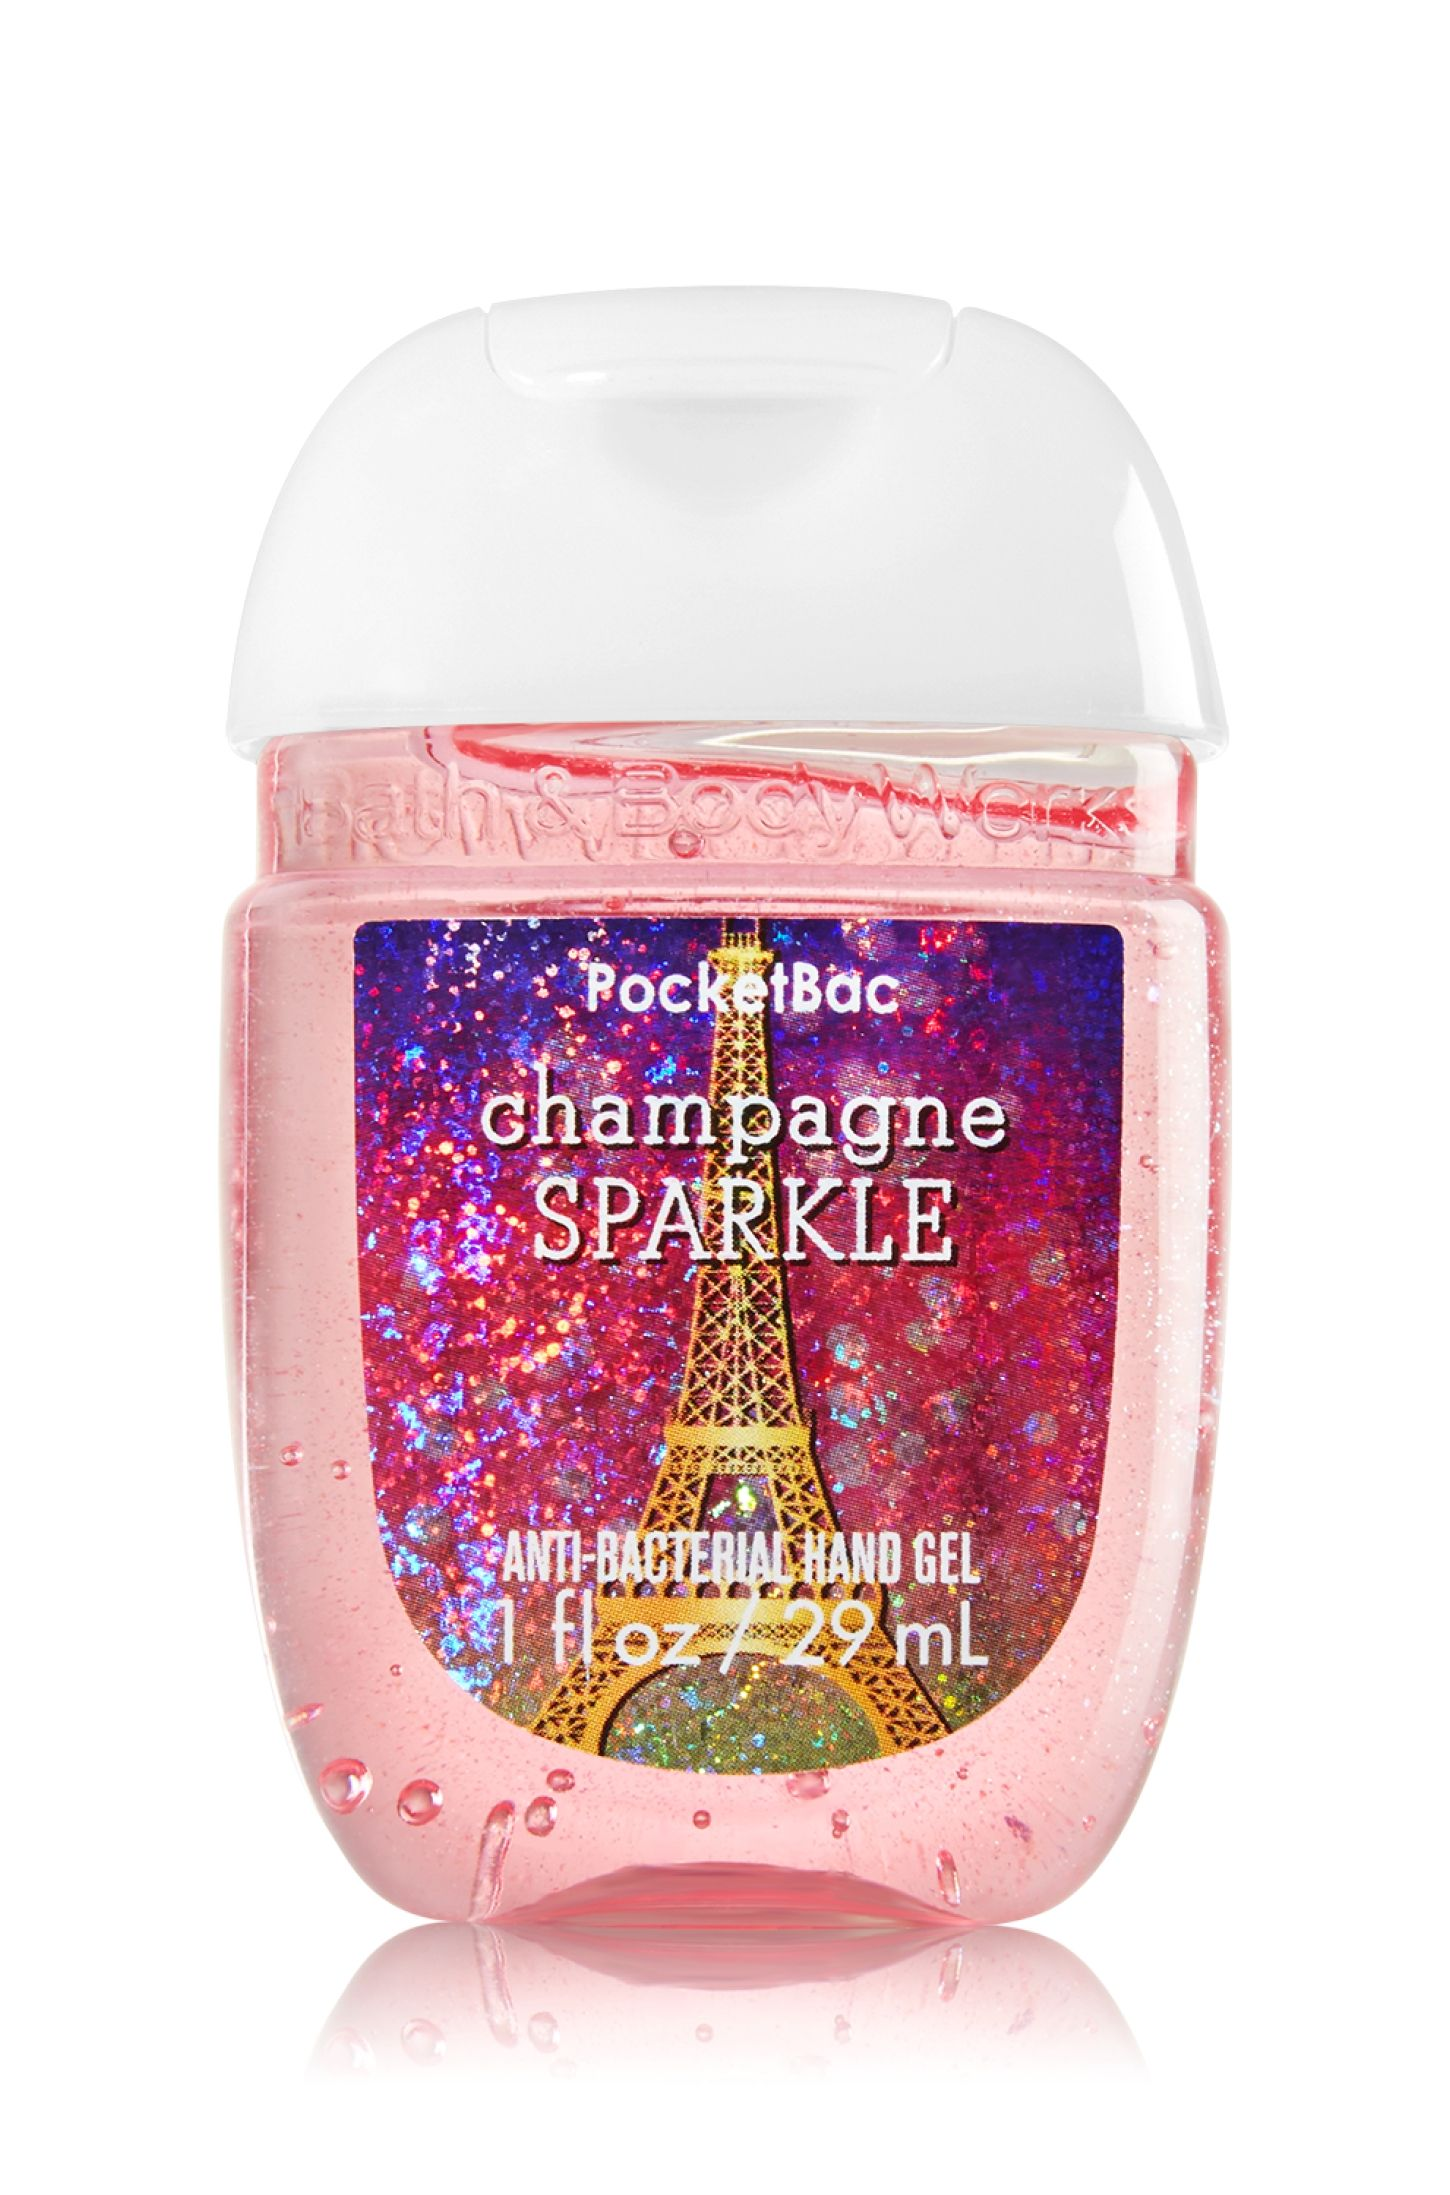 Bath Body Works Champagne Sparkle Pocketbac Sanitizing Hand Gel